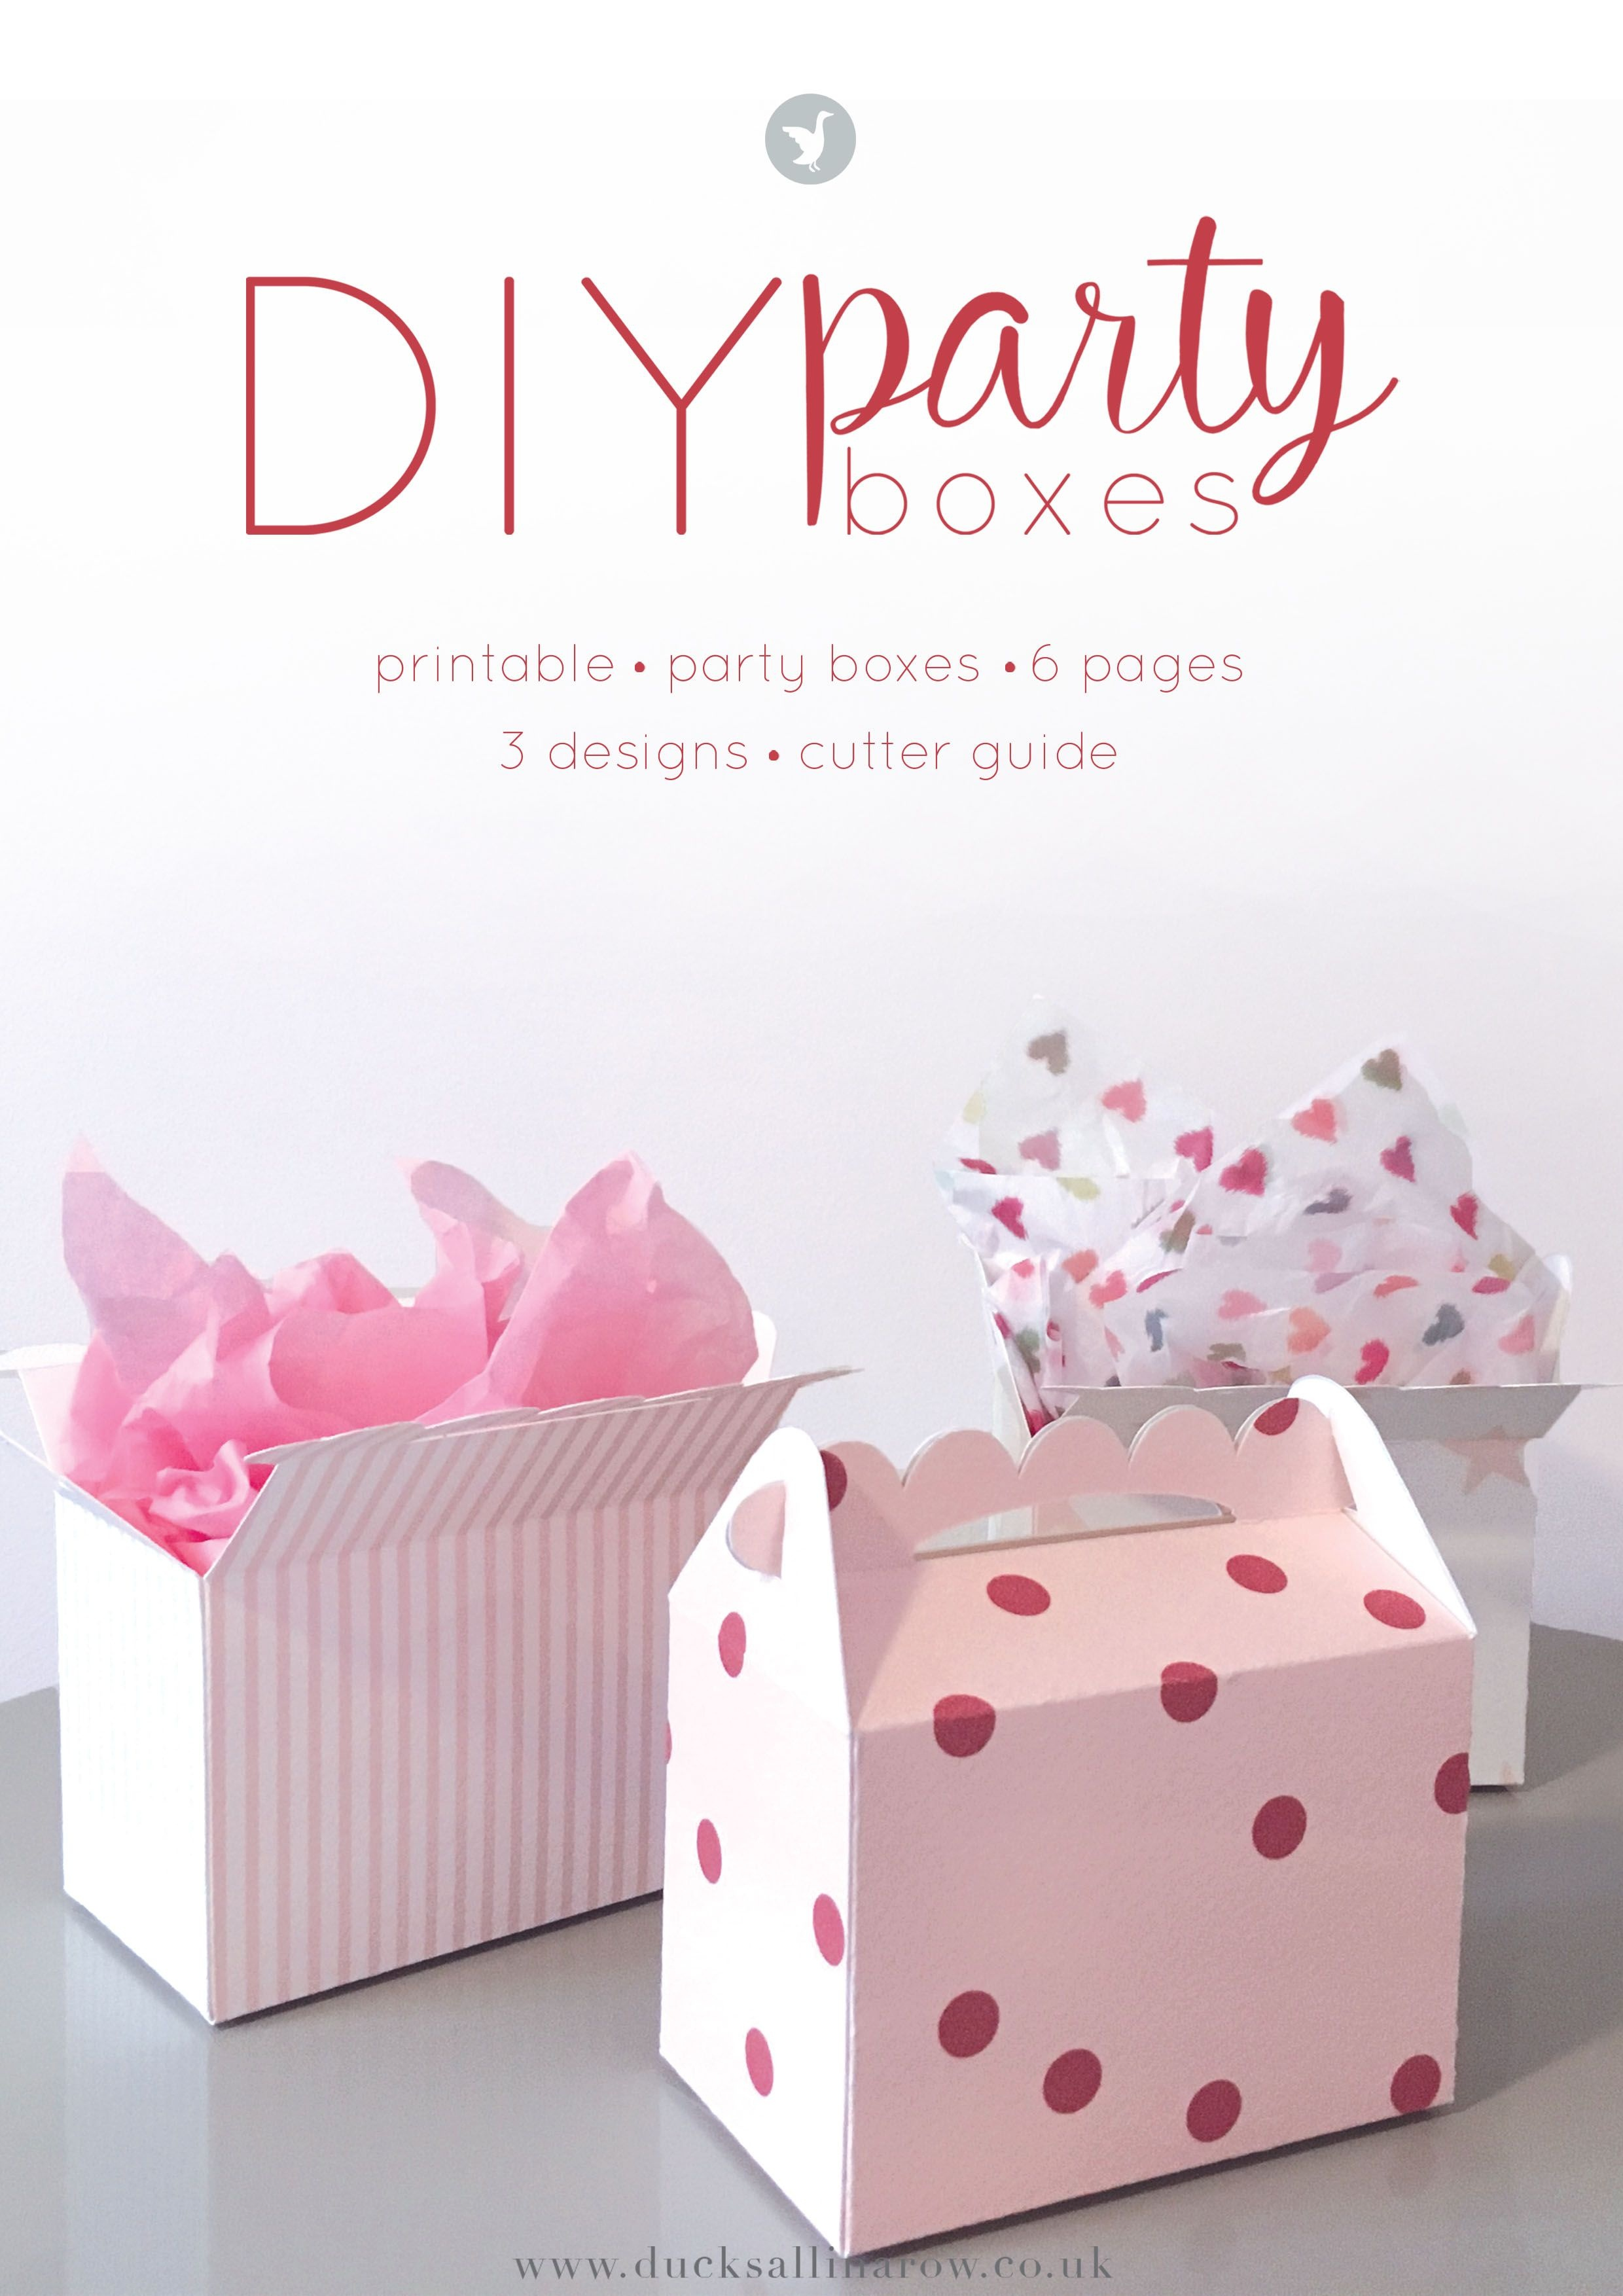 Adorable Diy Party Boxes - Free Printables   Gift Wrapping Ideas - Printable Box Templates Free Download